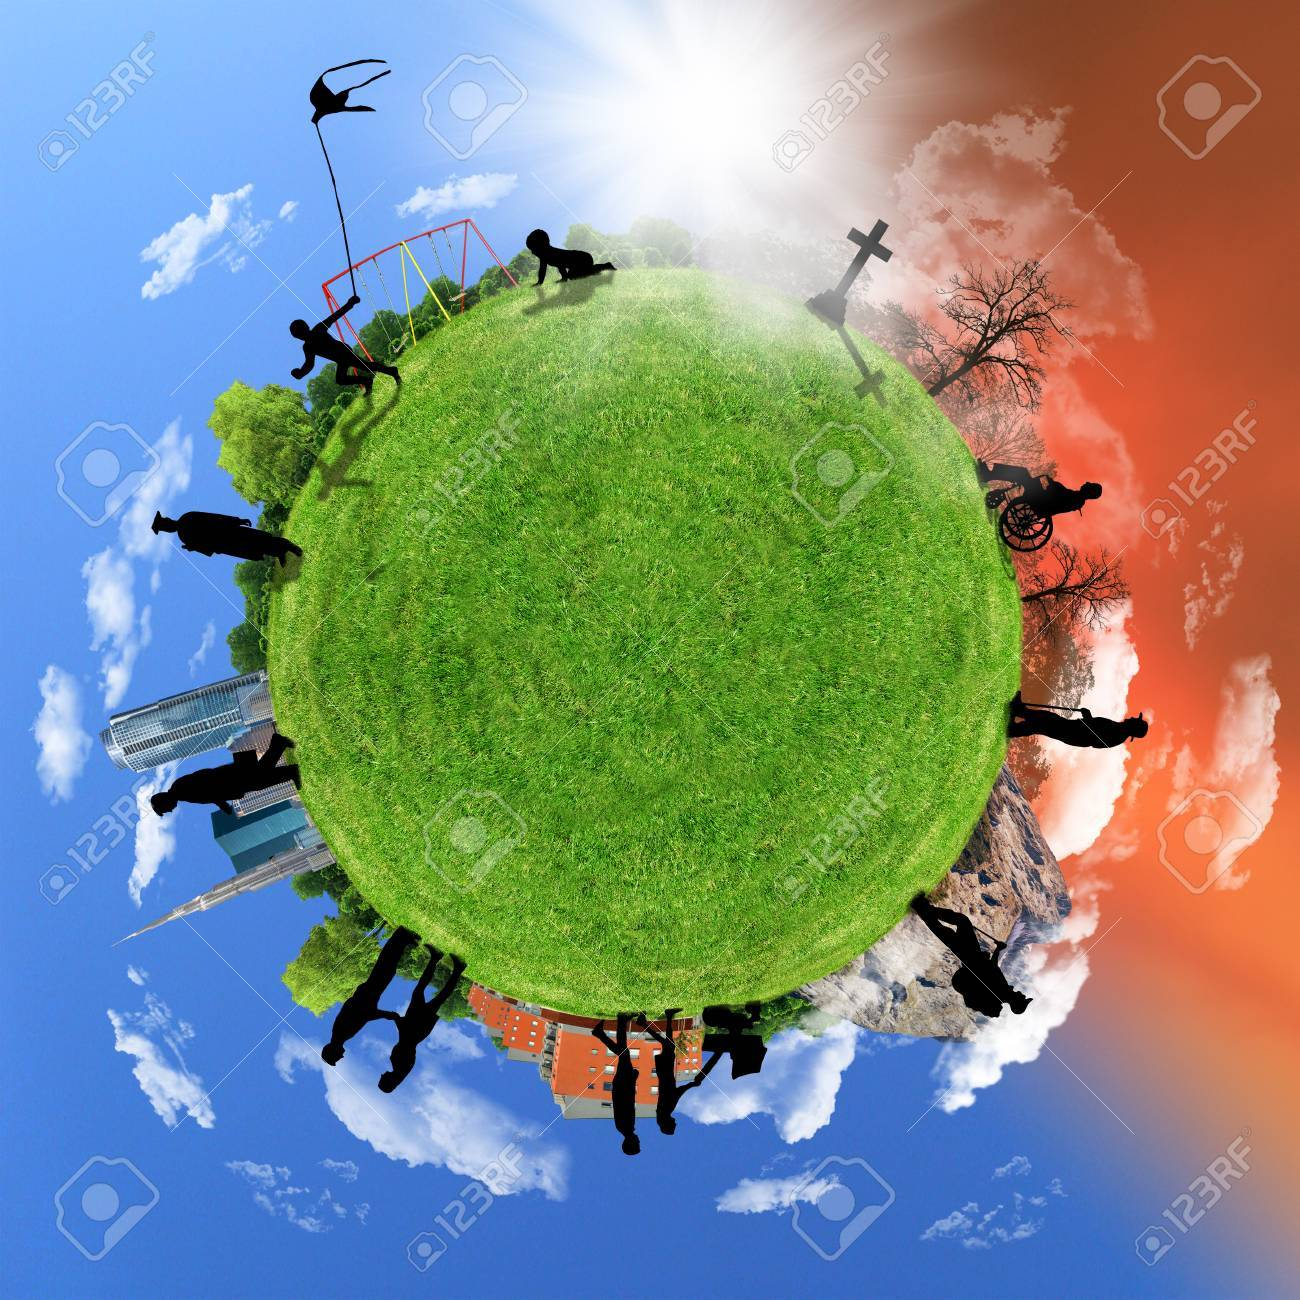 Human life circle, concept on a globe, aging. - 36573942